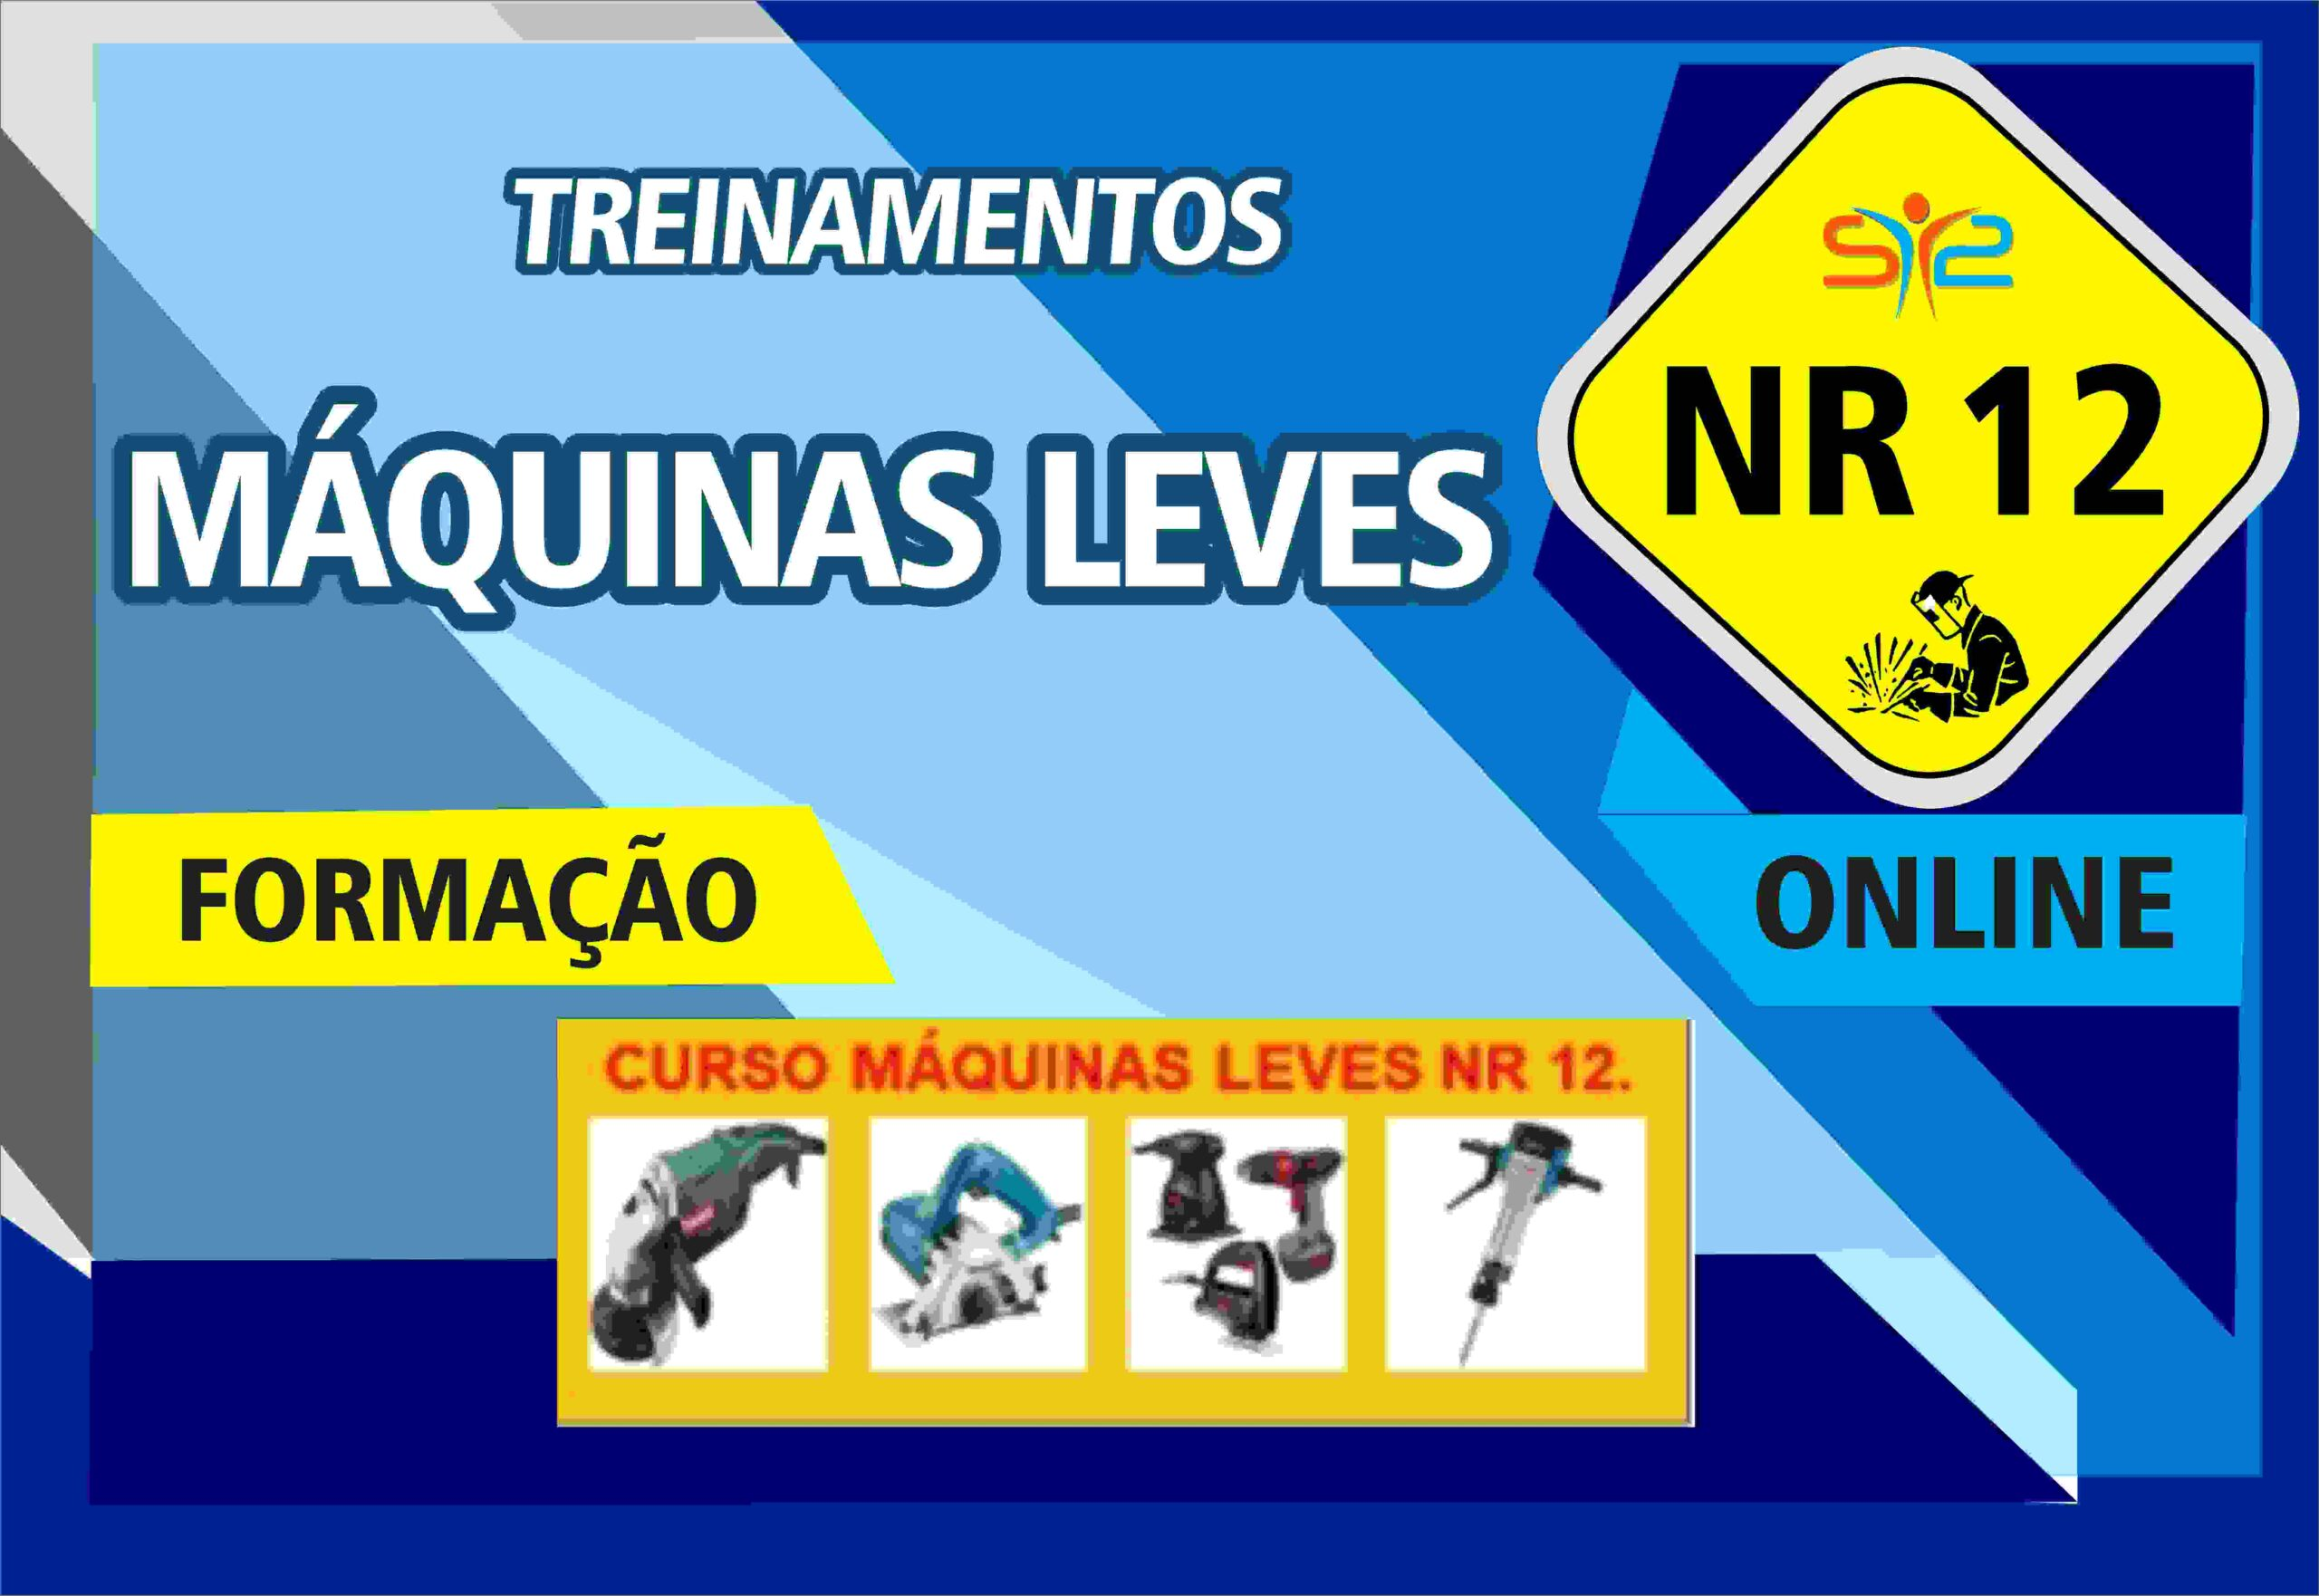 nr 12 – maquinas leves